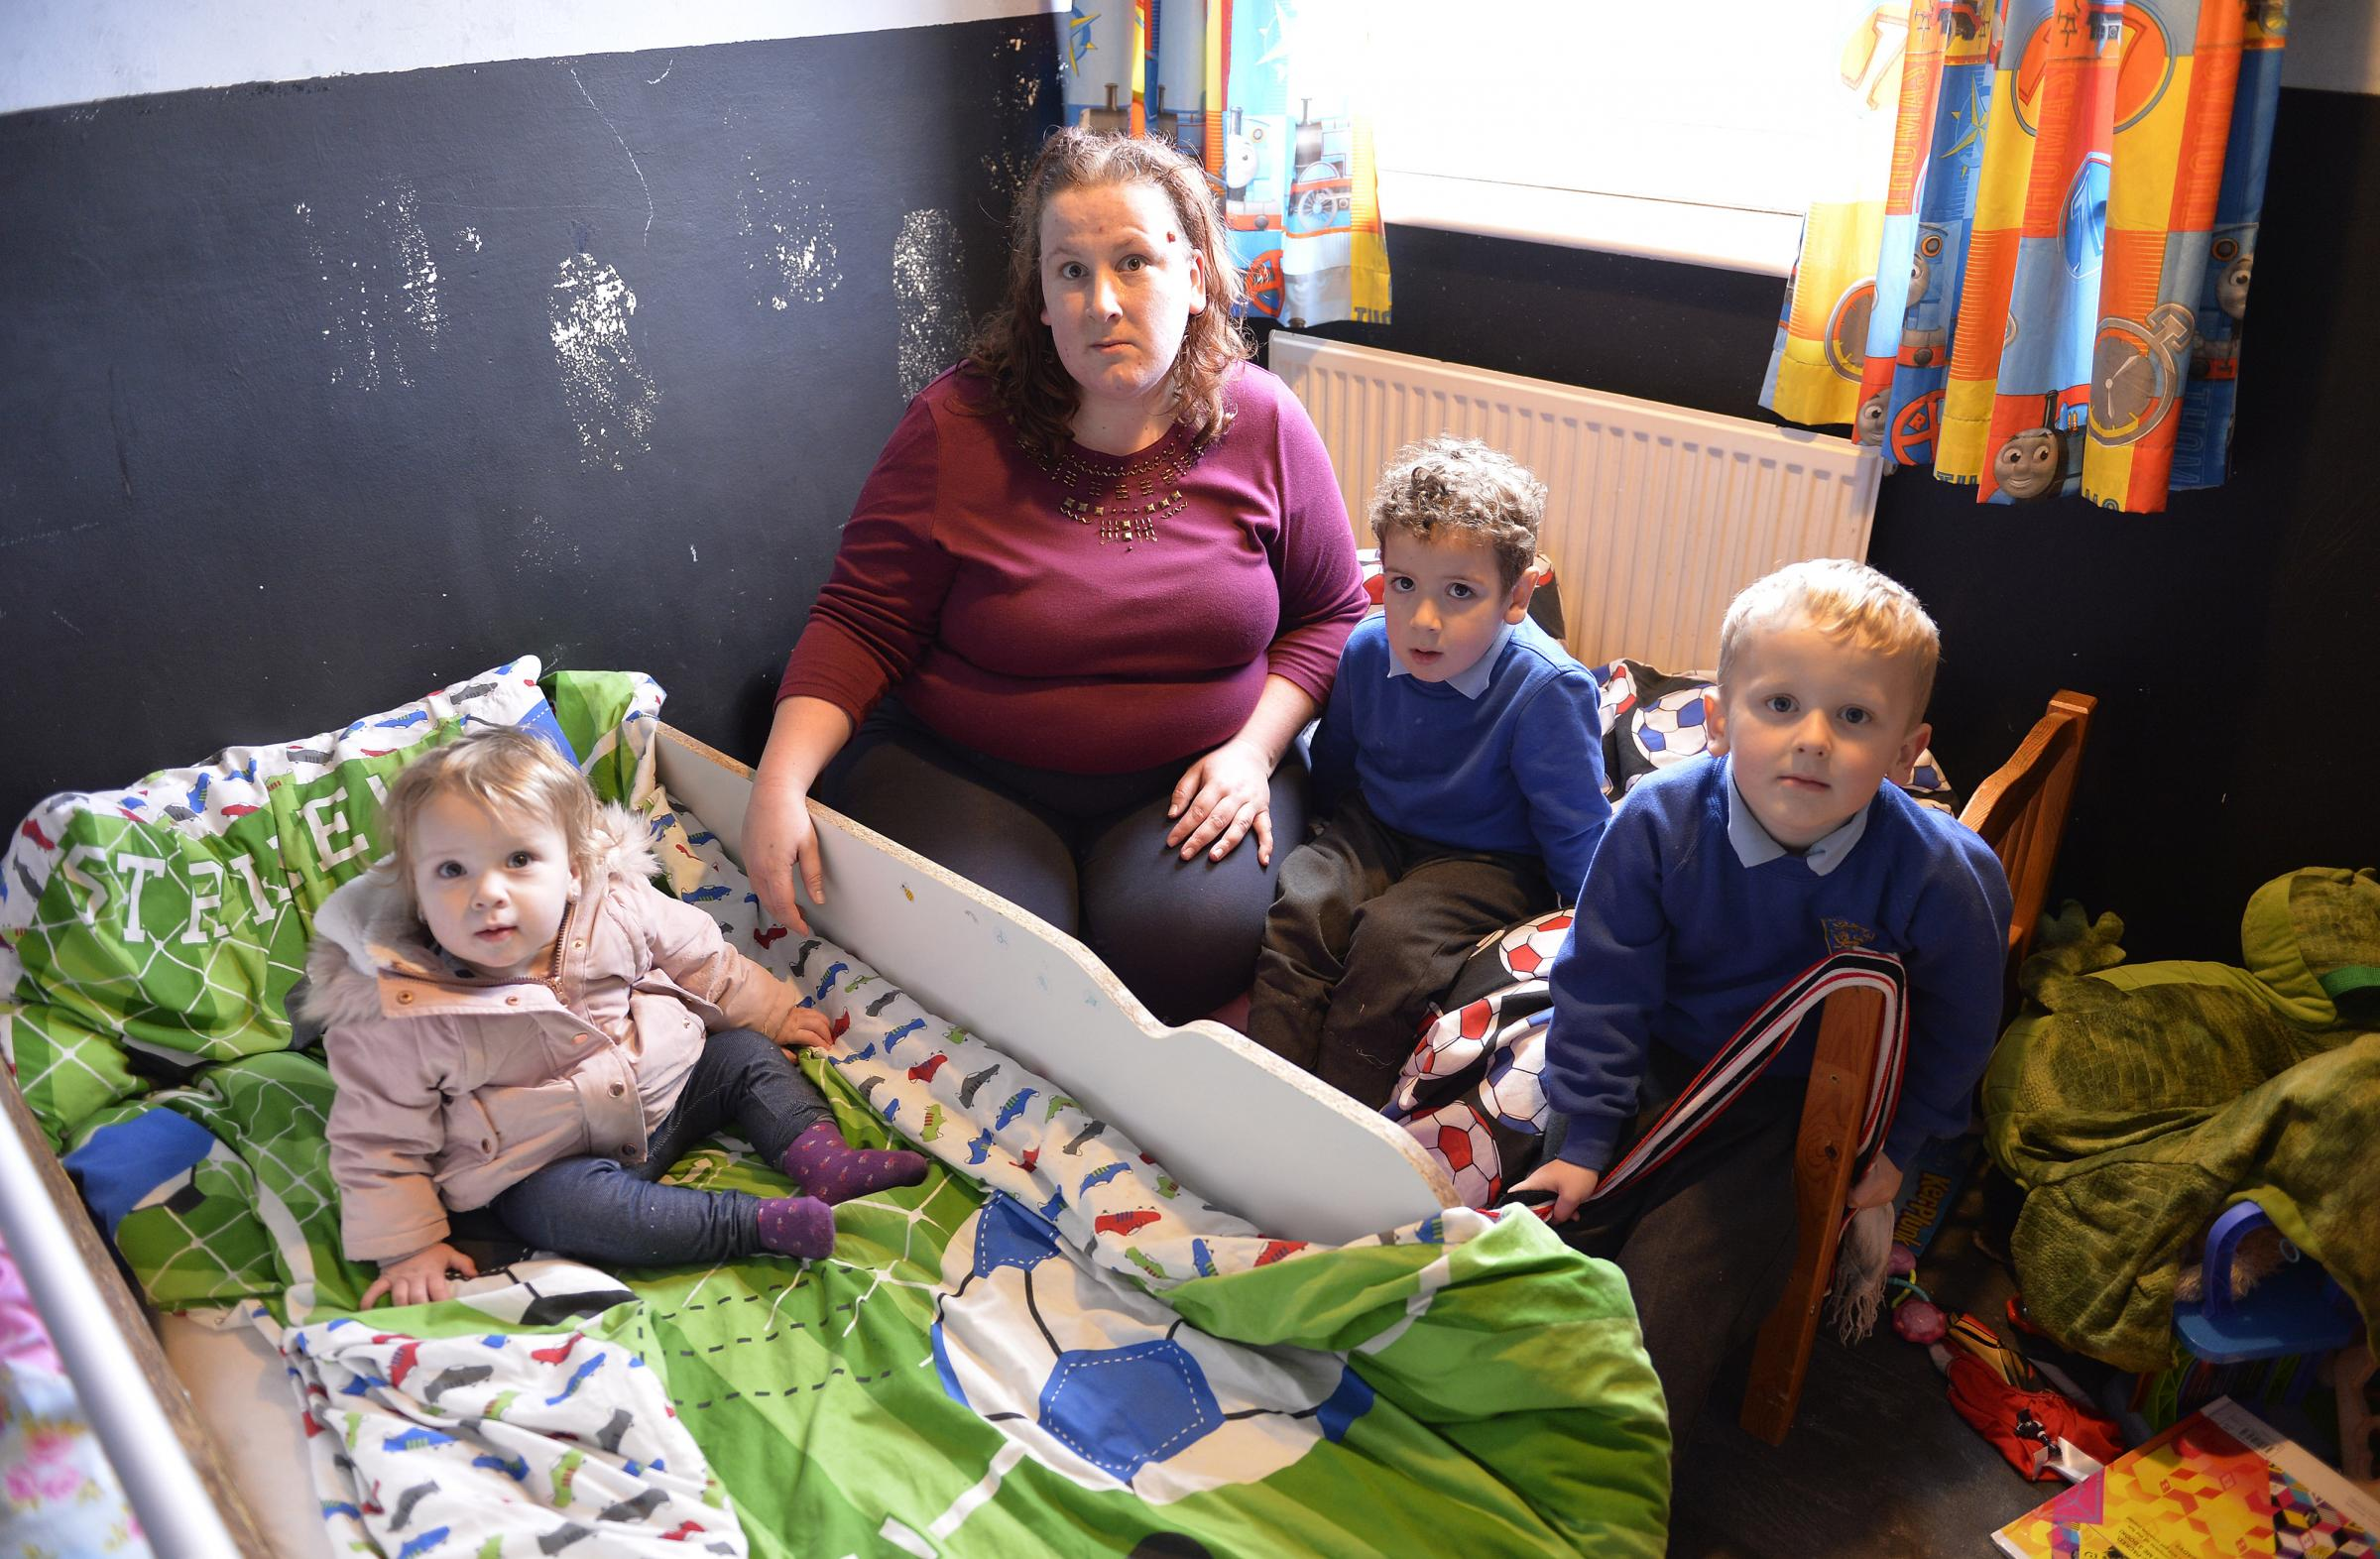 Worries - mum Louise Webber with her children, Oliver, 5, Oscar, 4, and Keeley, 17 months